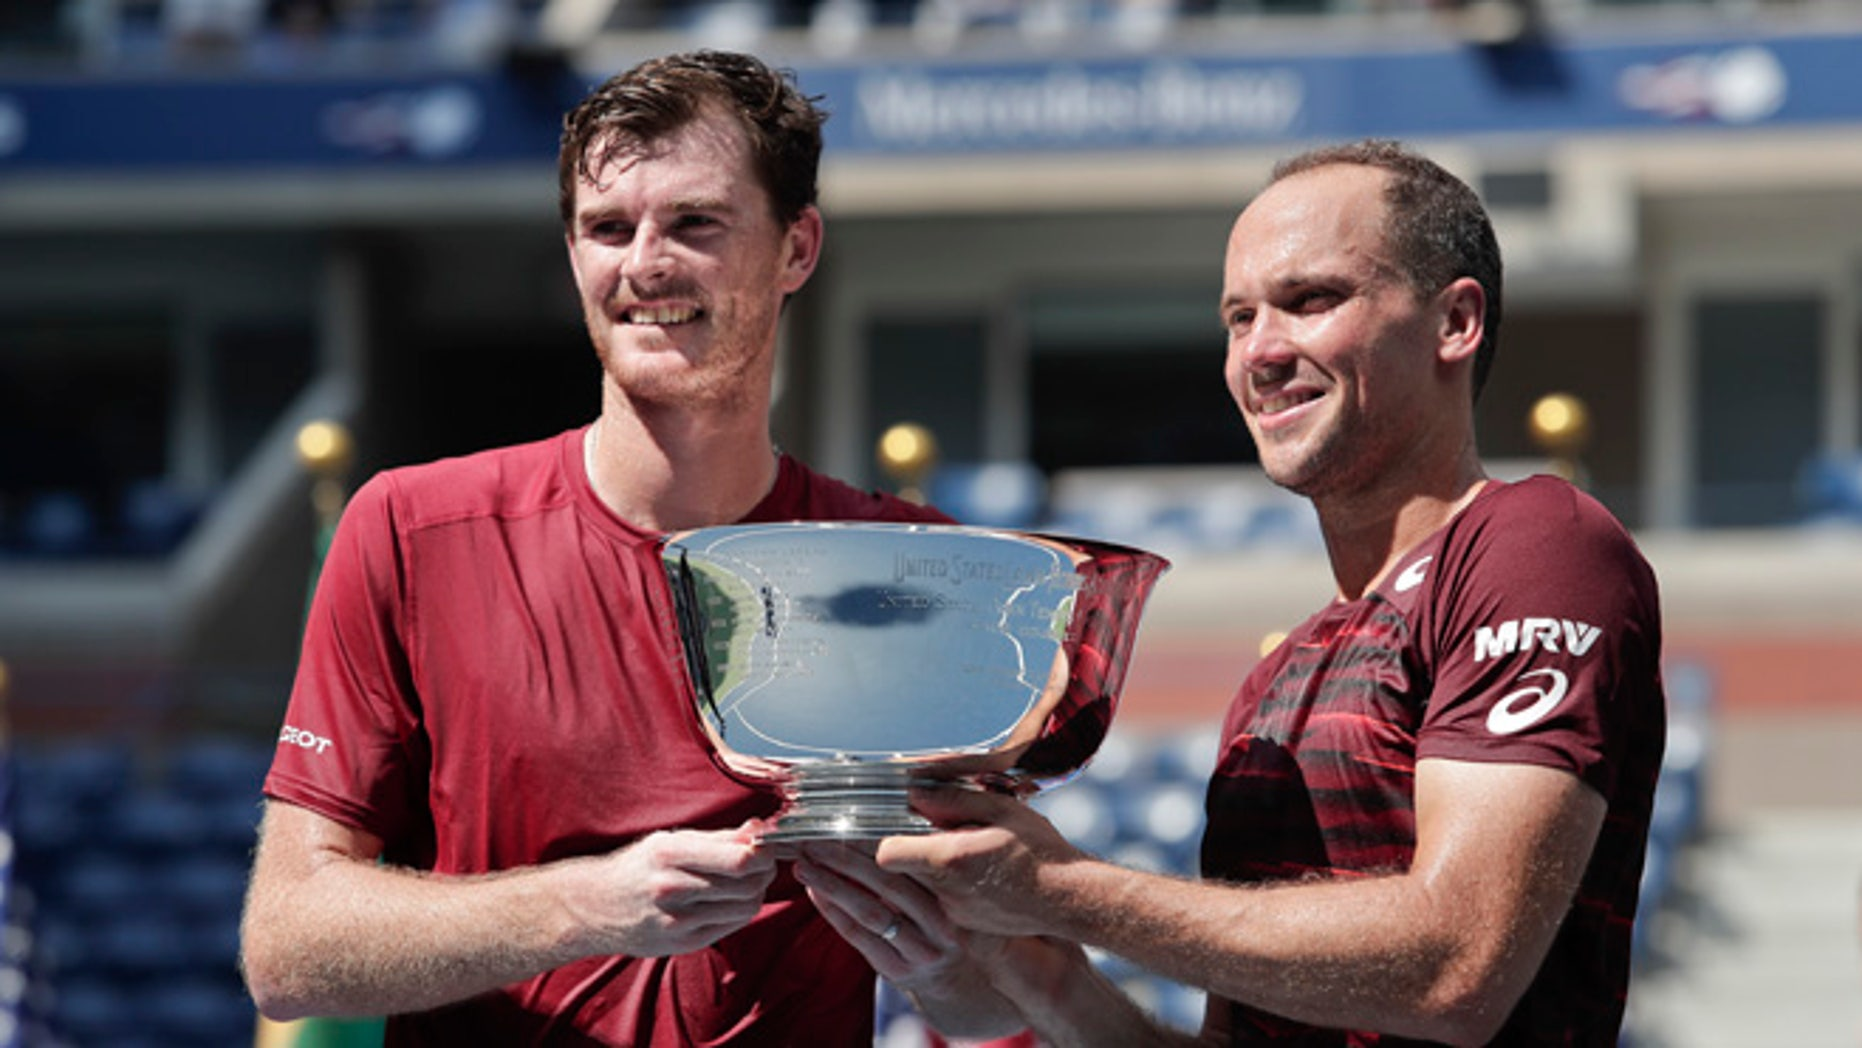 Jamie Murray, of the United Kingdom, left, and Bruno Soares, of Brazil, pose for a photo with the championship trophy after beating Pablo Carreno Busta, of Spain, and Guillermo Garcia-Lopez, of Spain, to win the men's doubles final of the U.S. Open tennis tournament, Saturday, Sept. 10, 2016, in New York. (AP Photo/Julie Jacobson)